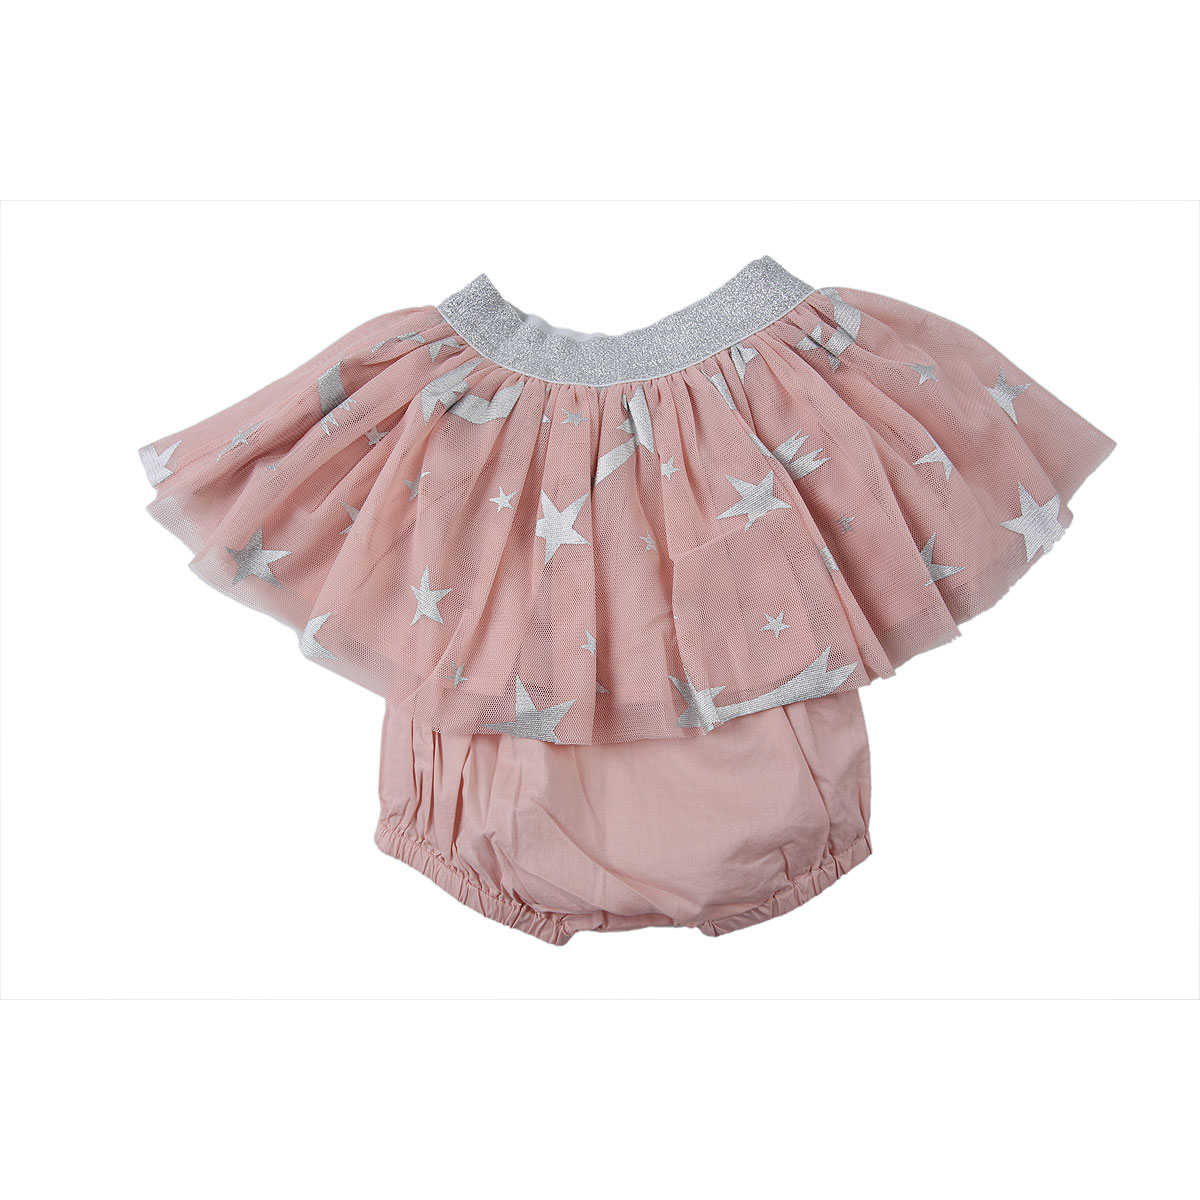 Stella McCartney Baby Skirts for Girls On Sale, Pink, polyester, 2019, 12M 18M 2Y 3M 3Y 6M 9M